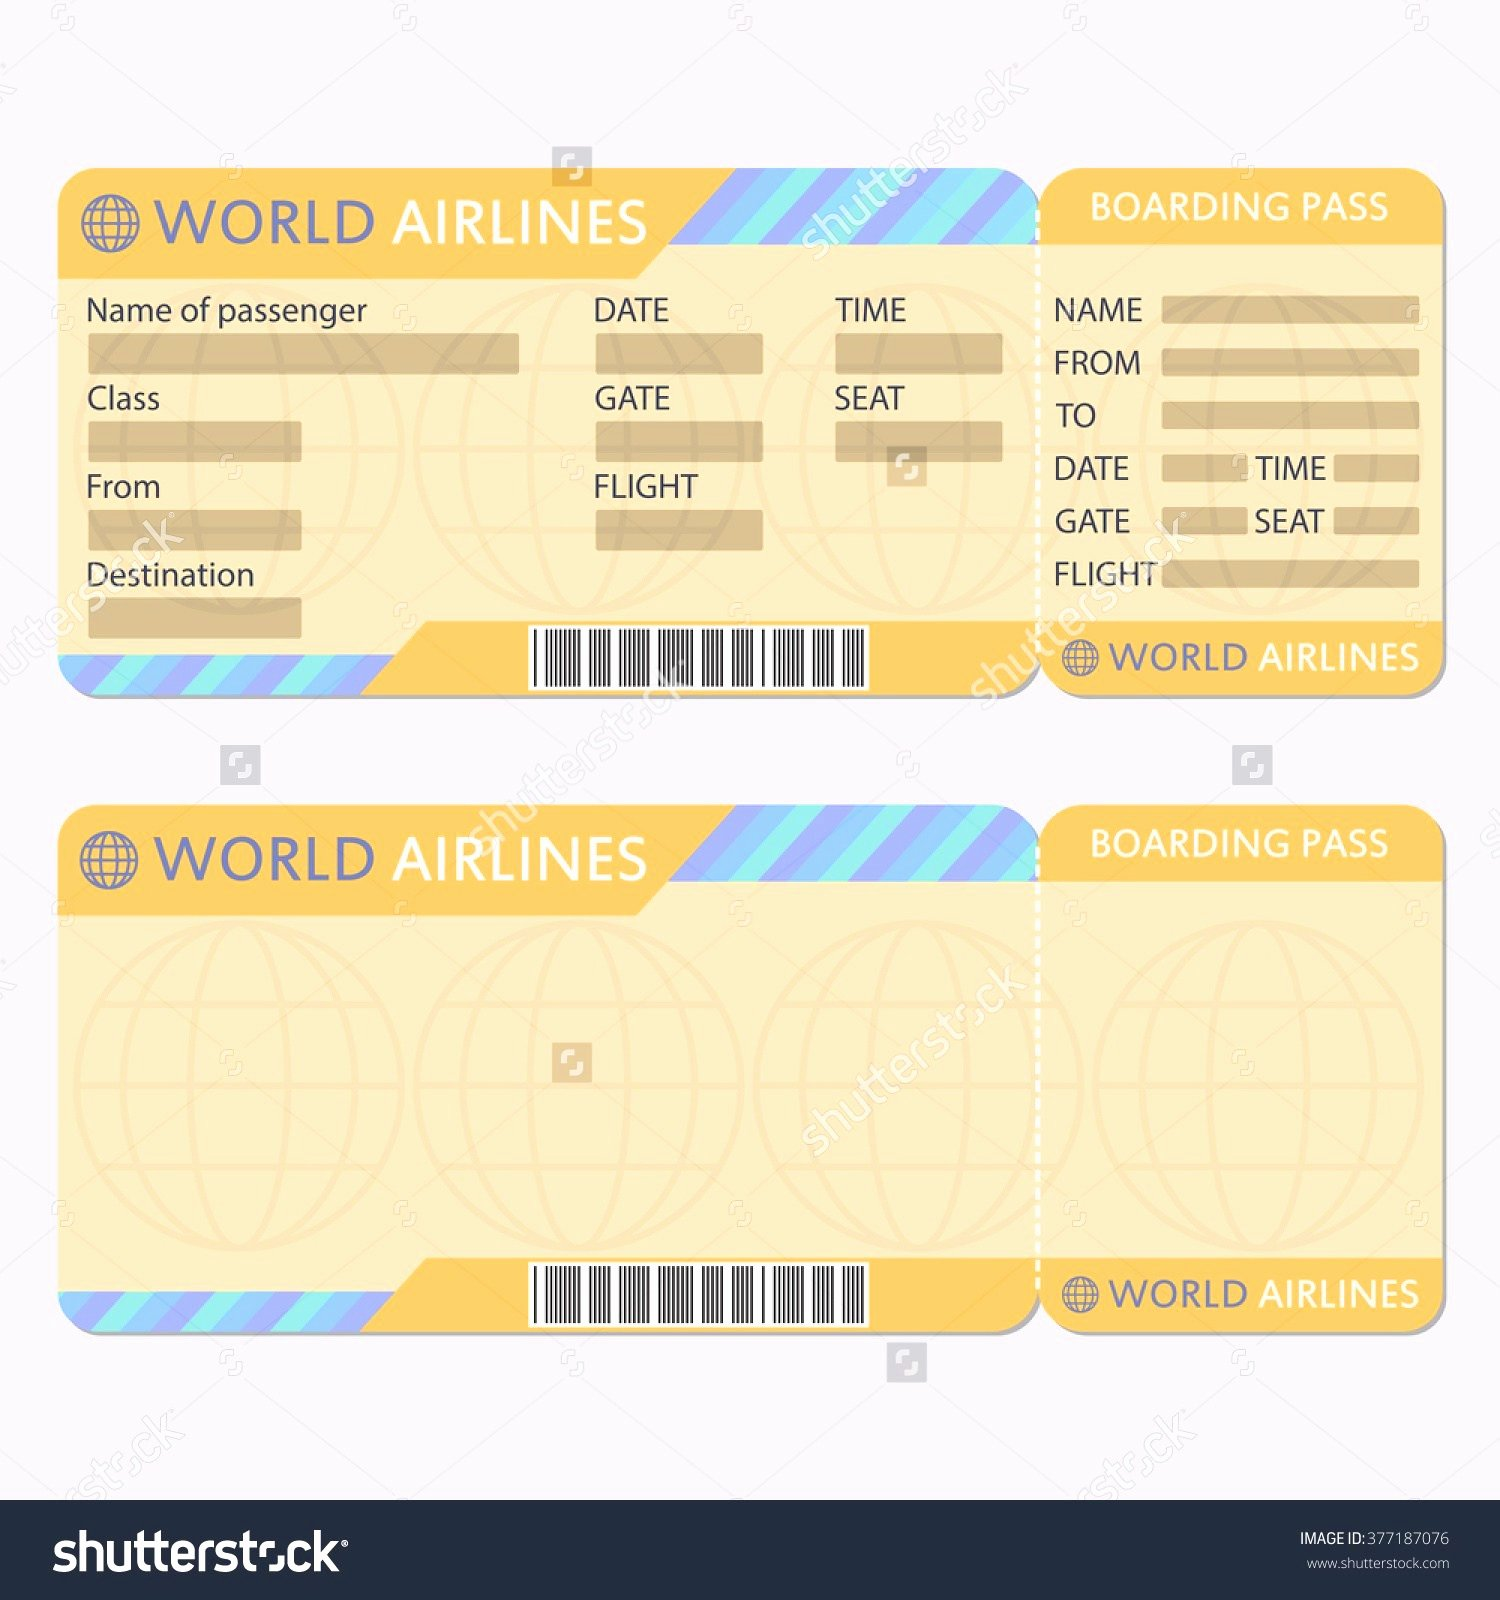 Ticket Maker Template Free Fresh Fake Airline Ticket Maker Portablegasgrillweber